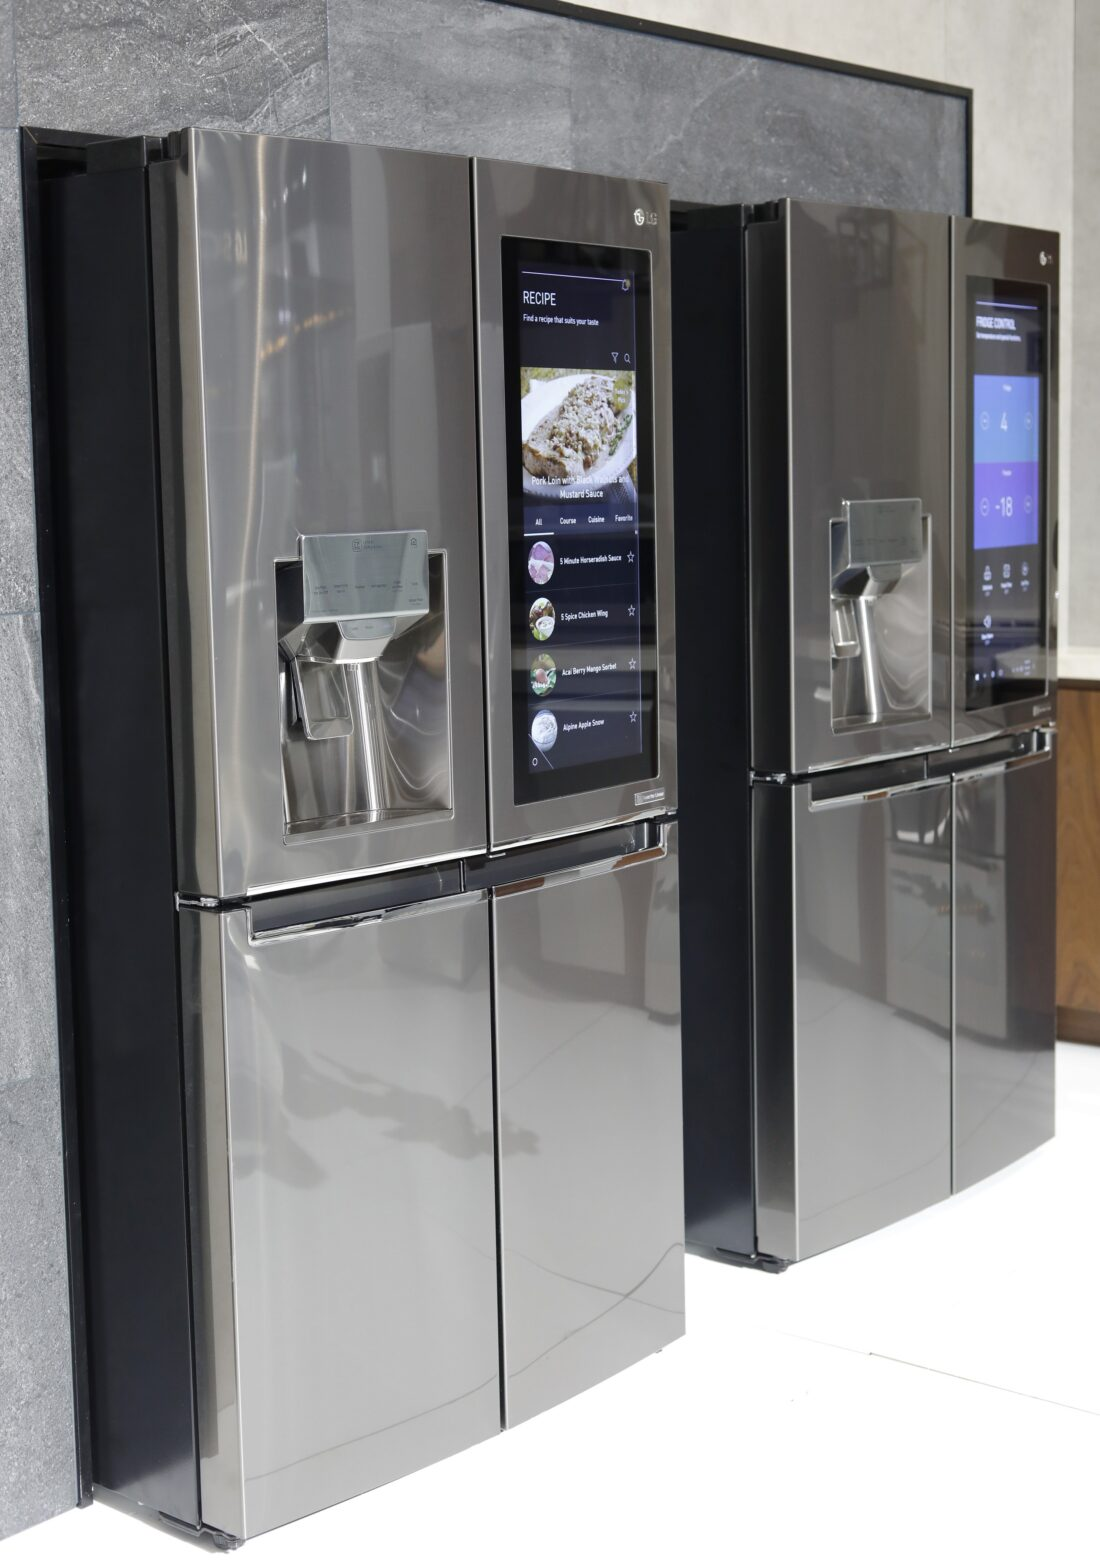 Two LG InstaView Door-in-Door refrigerators in the LG display zone at CES 2017